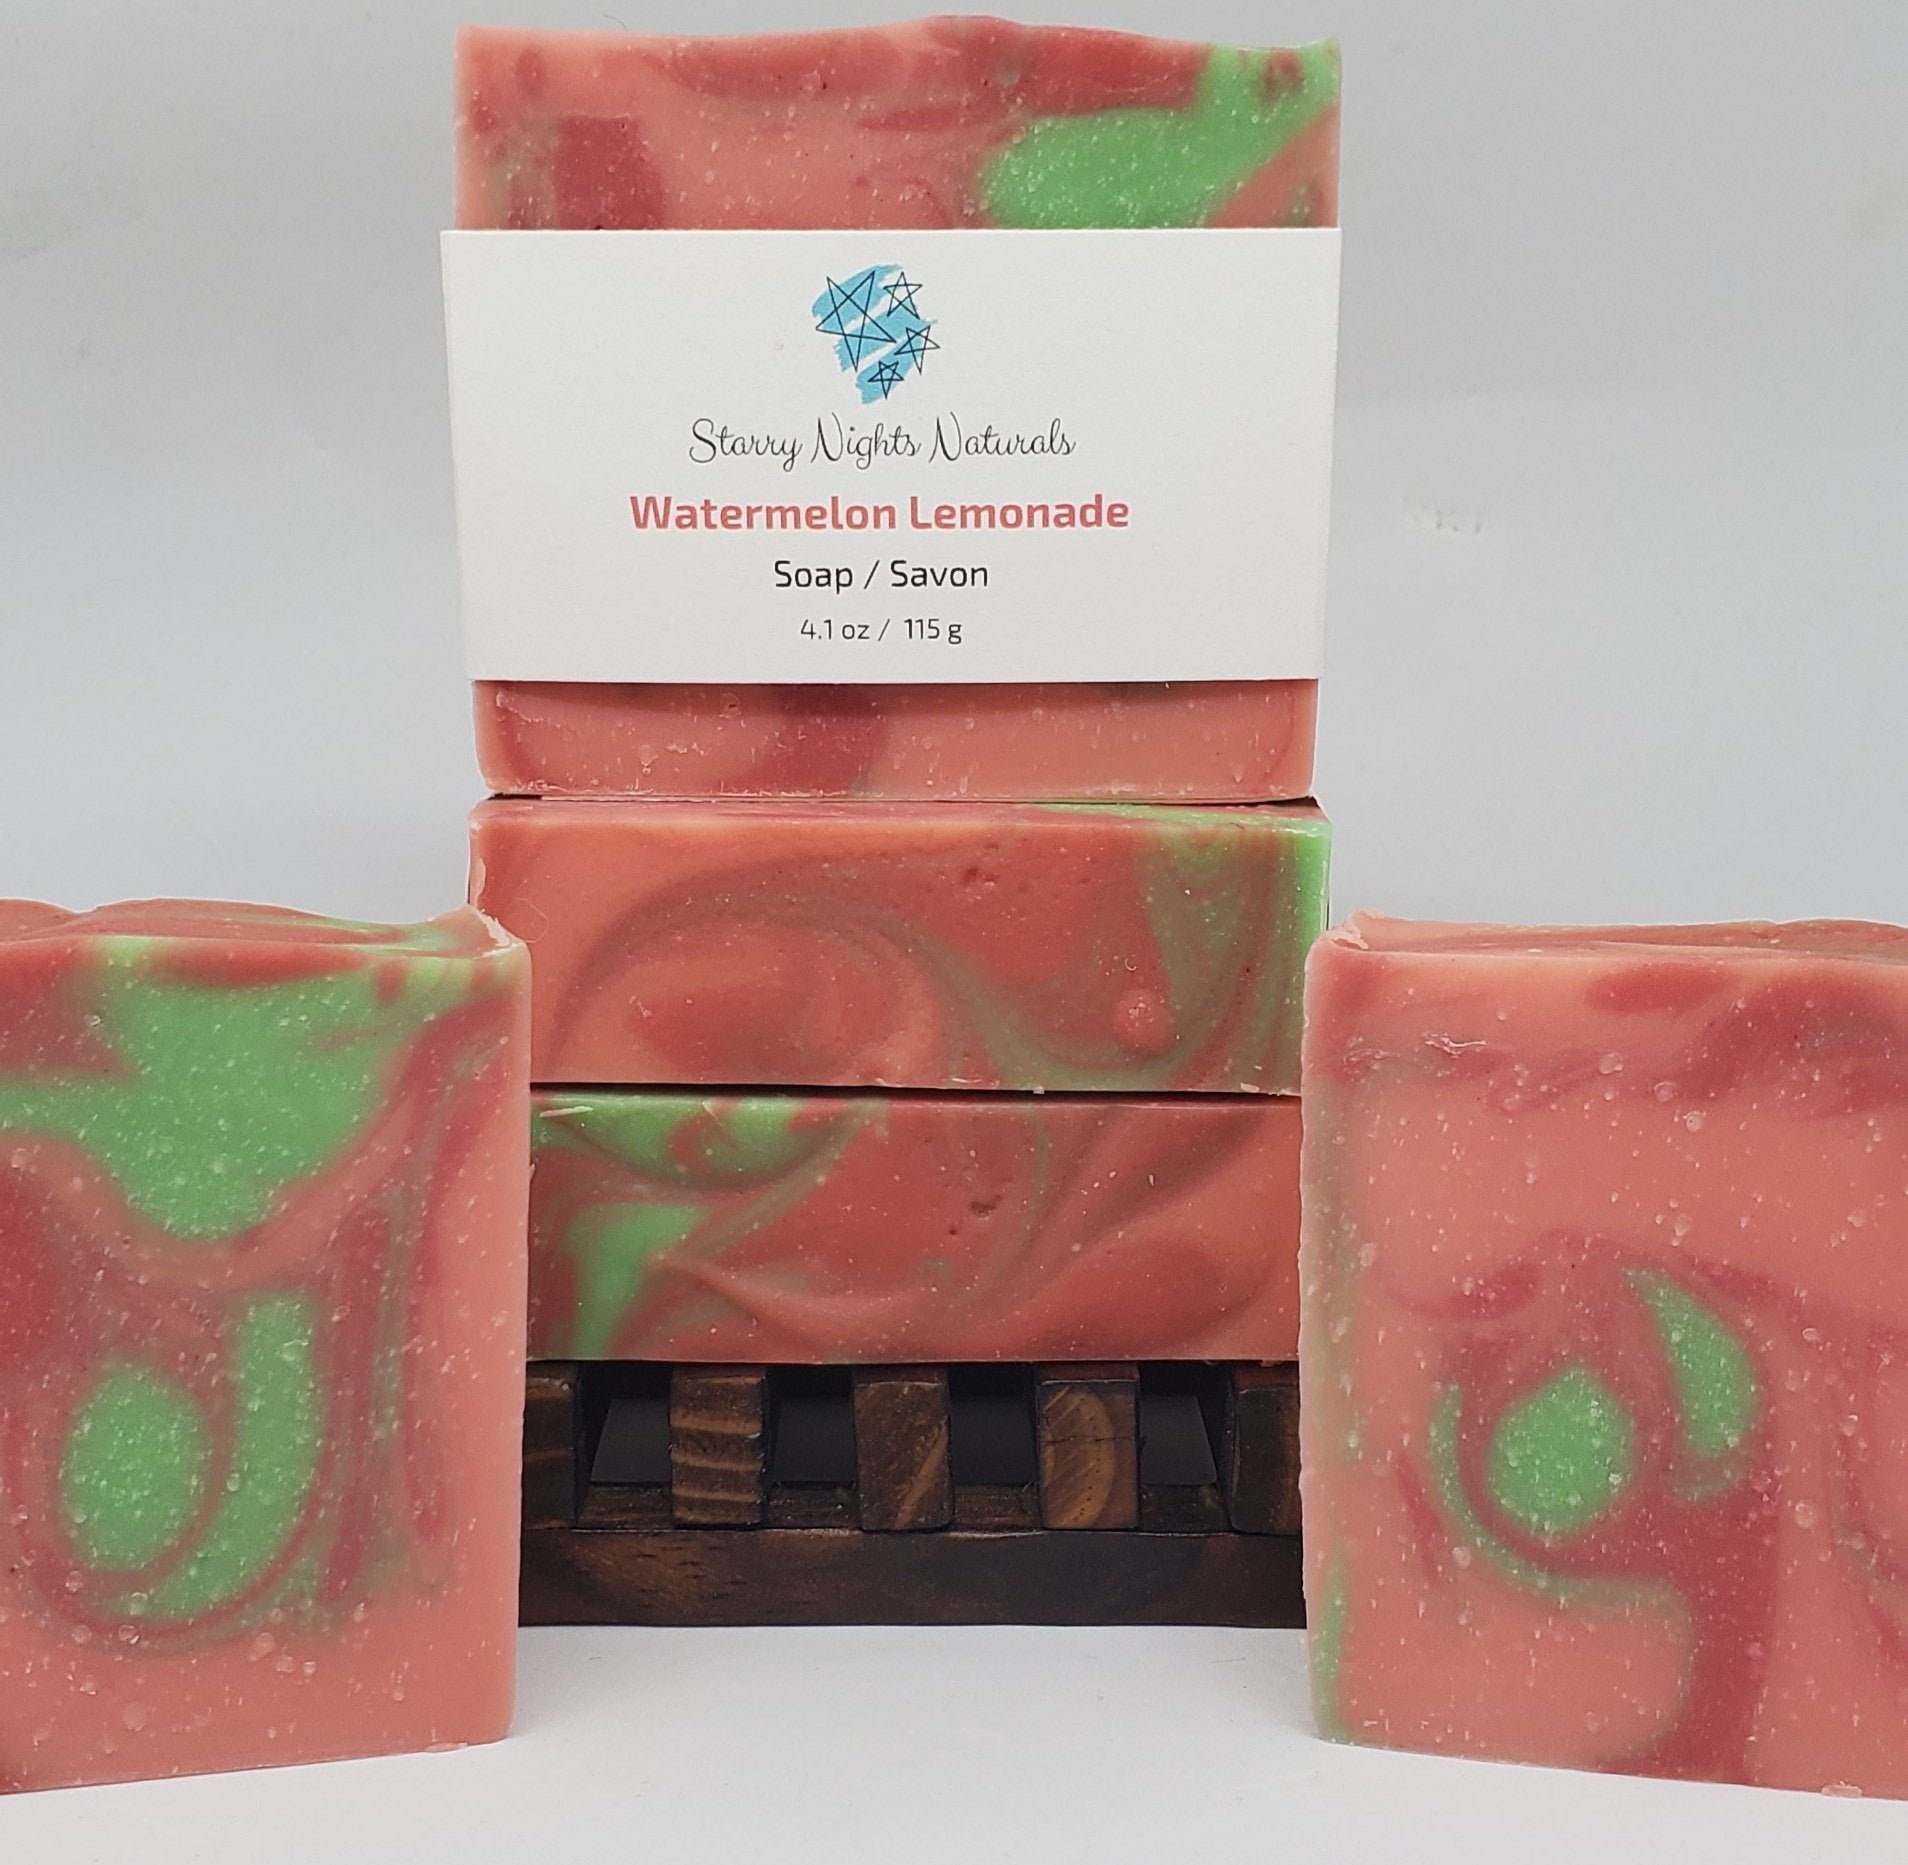 Watermelon Lemonade Artisan Soap